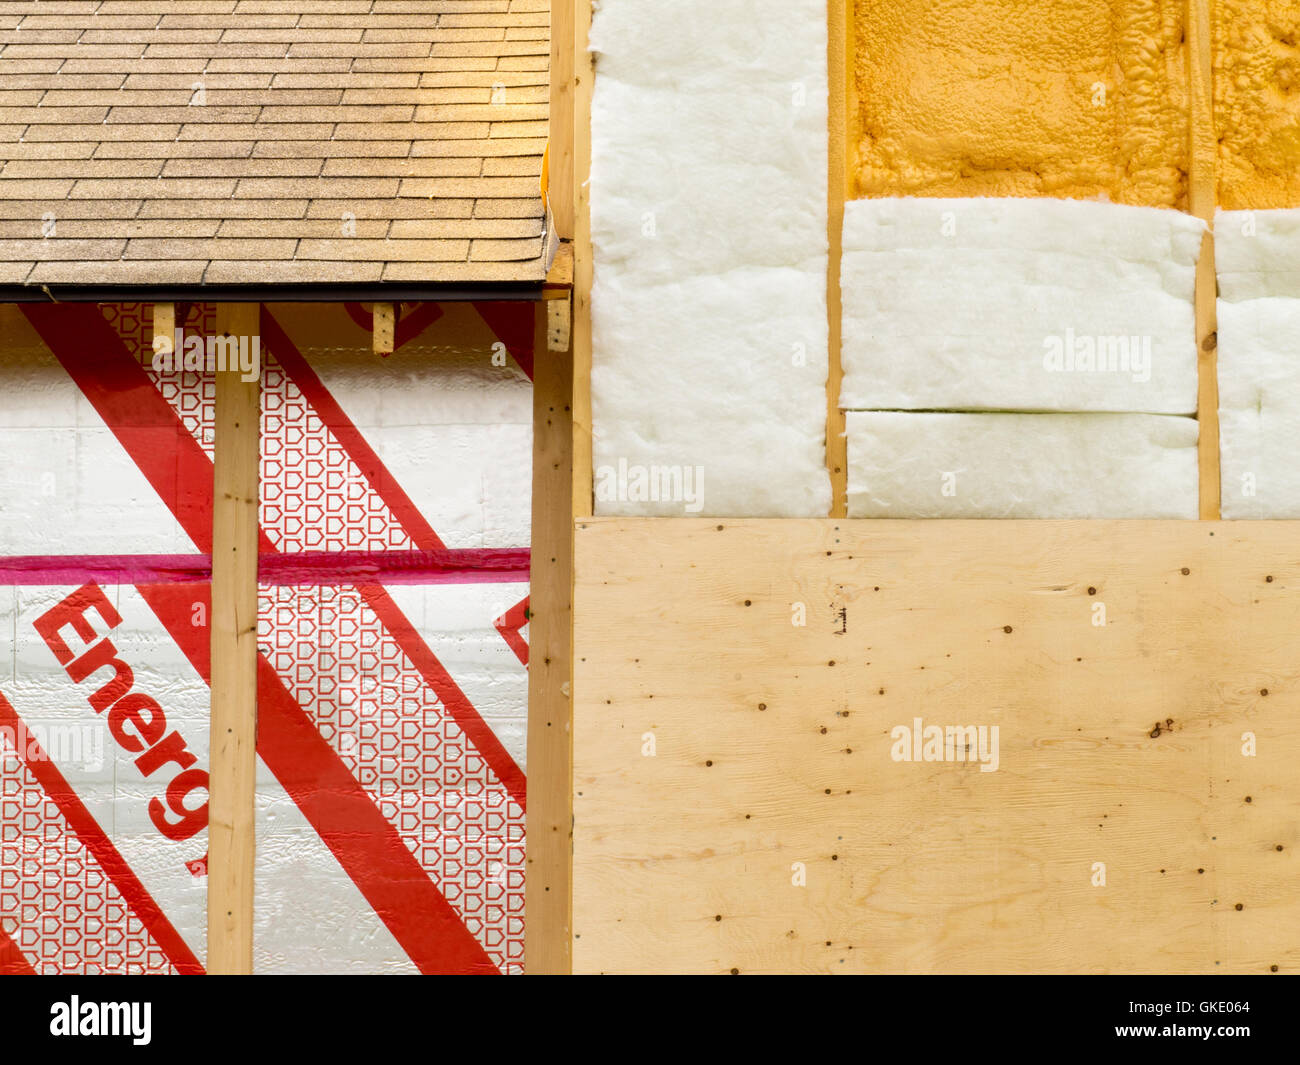 Wall insulation to save heating energy Stock Photo: 115248172 - Alamy